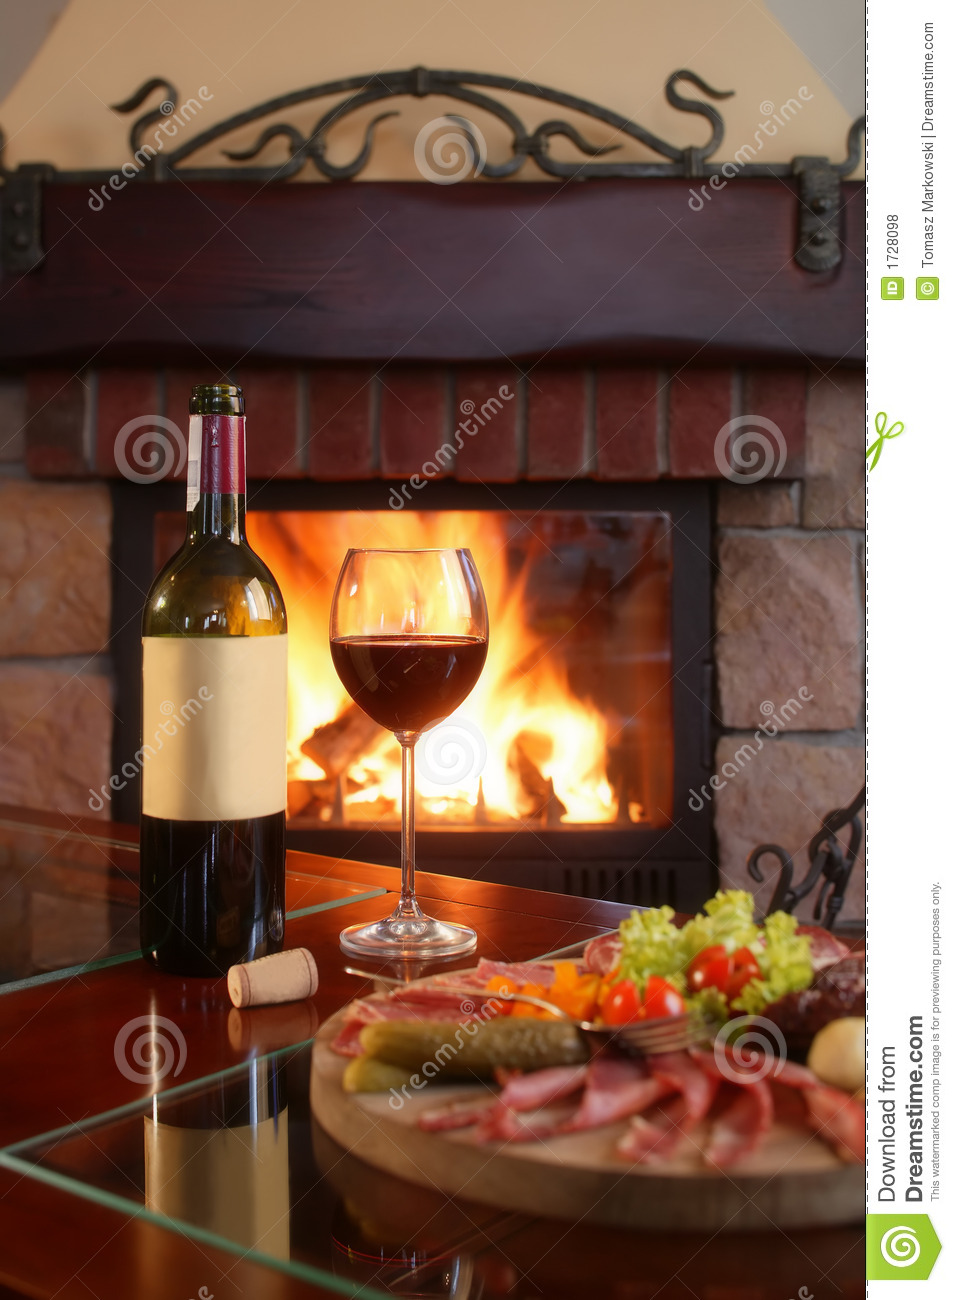 Fireplace And Red Wine 2 Royalty Free Stock Photos - Image ...